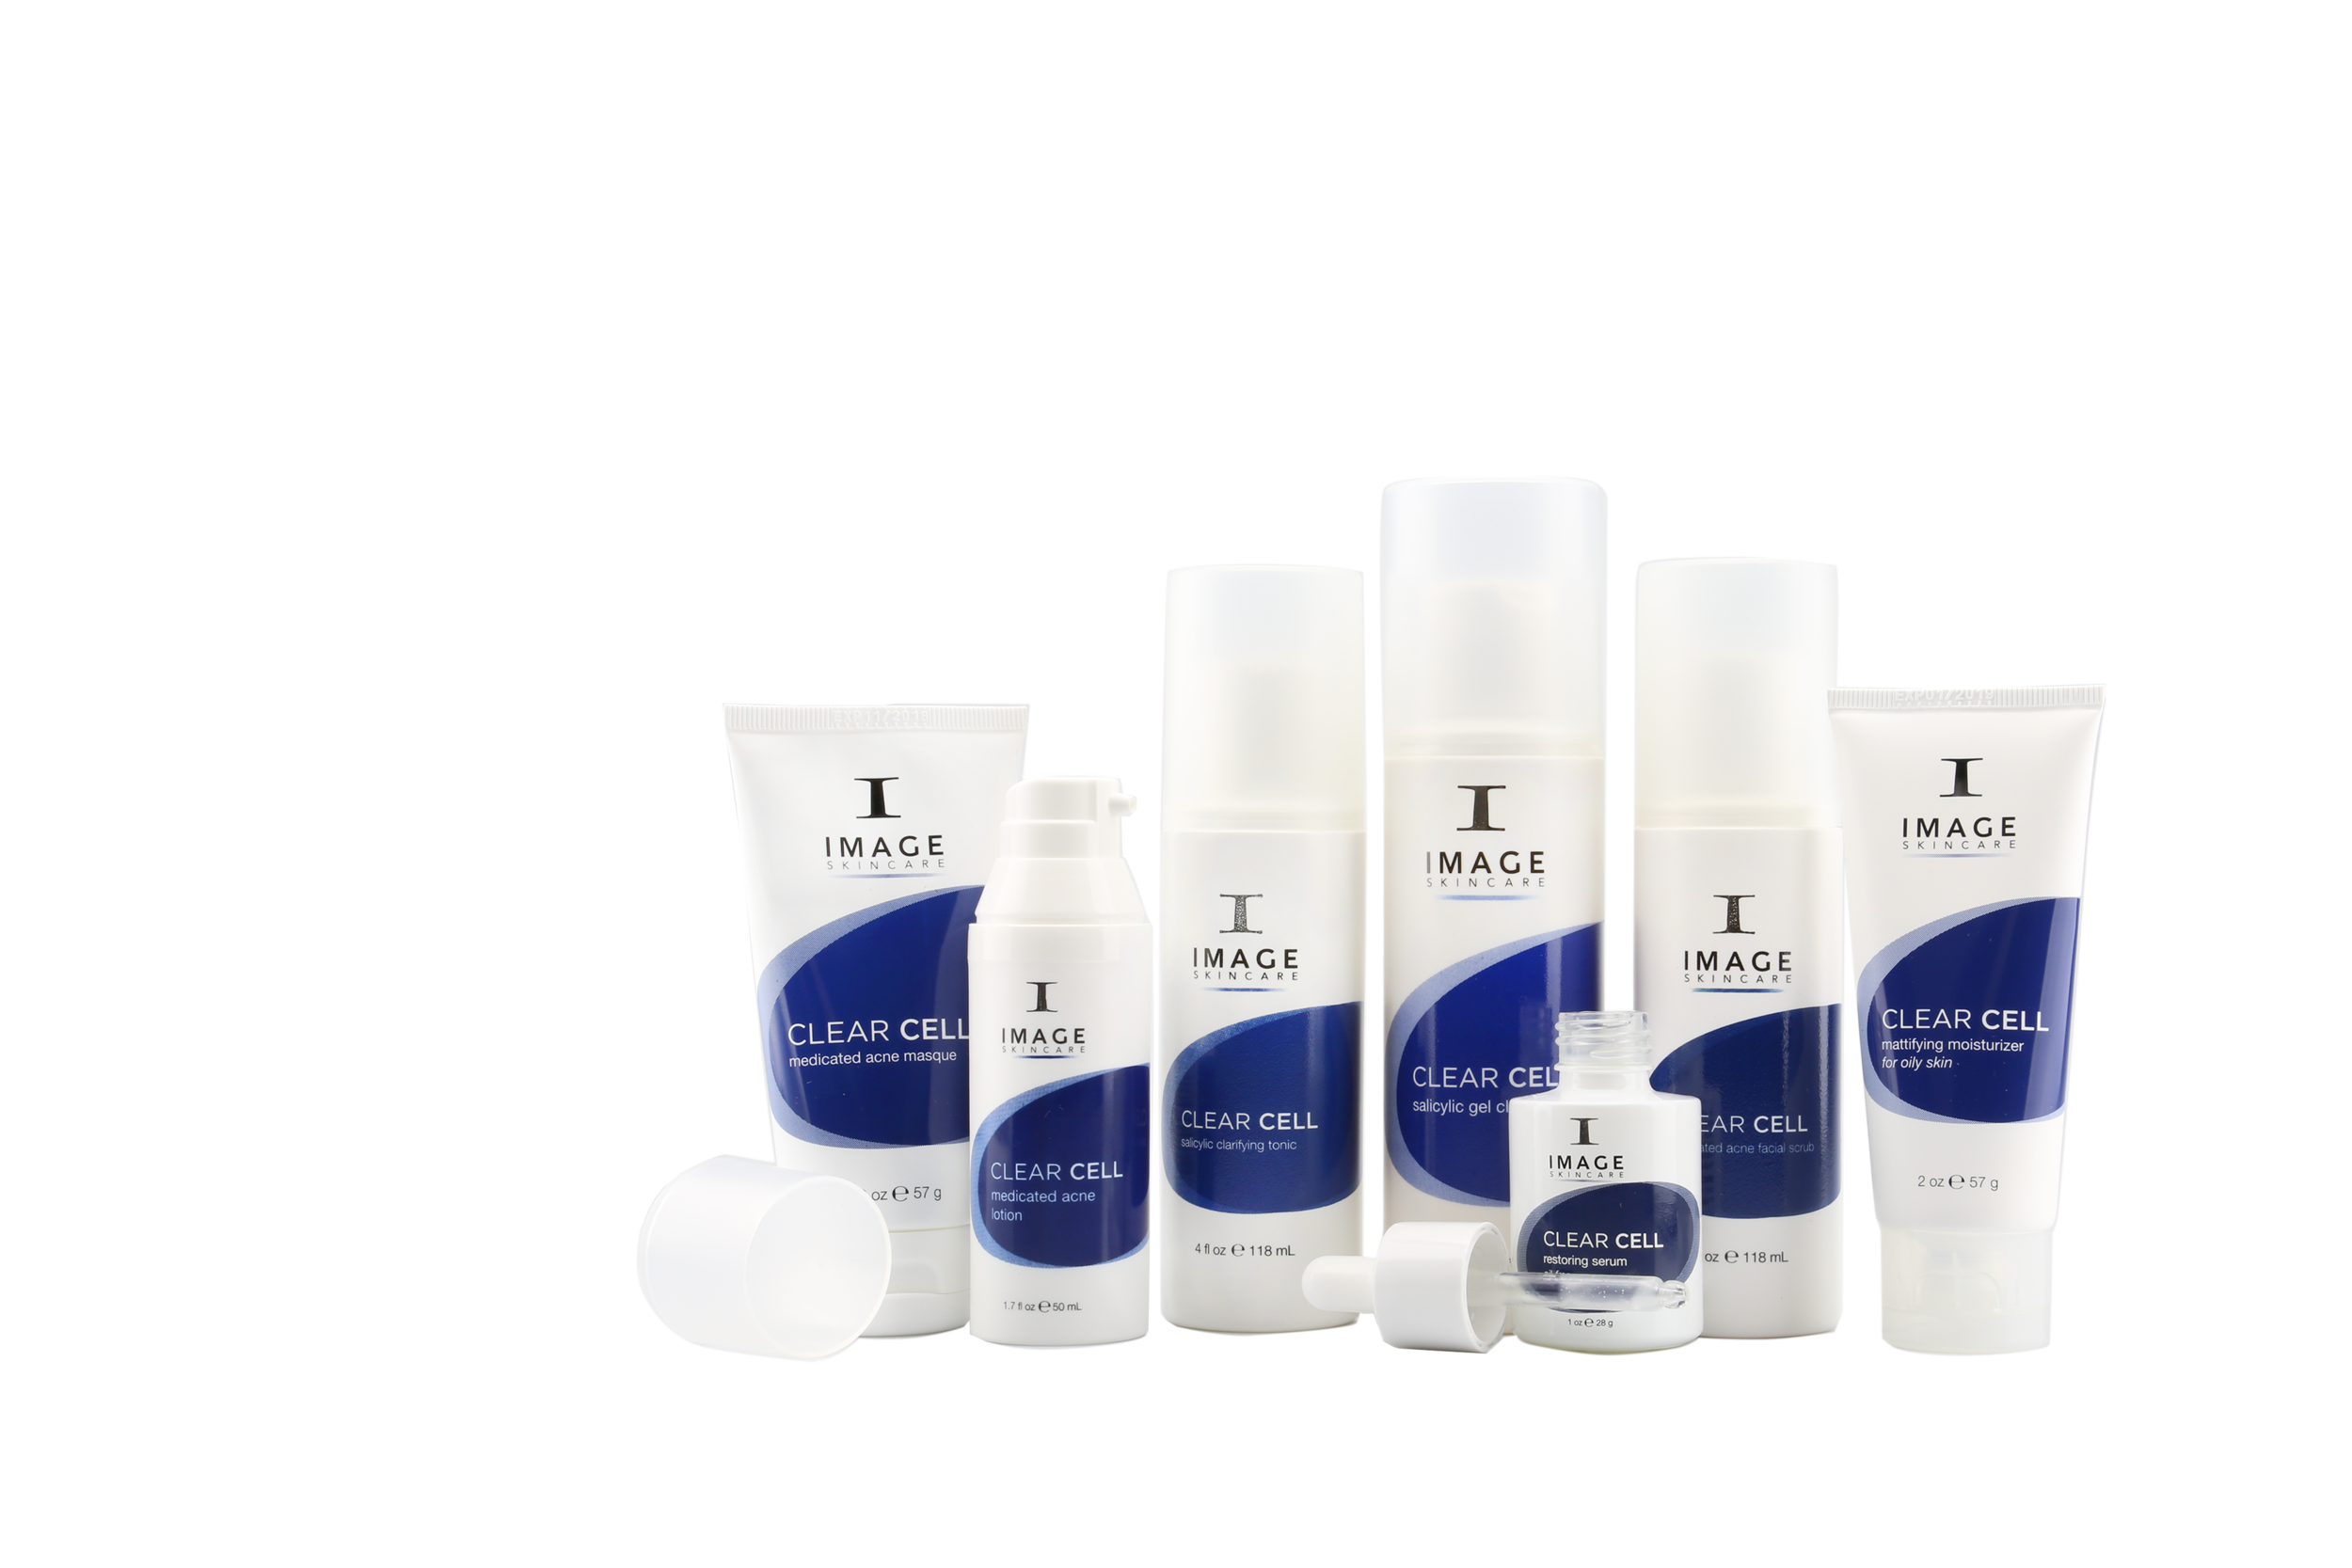 Clear Cell (Acne) -